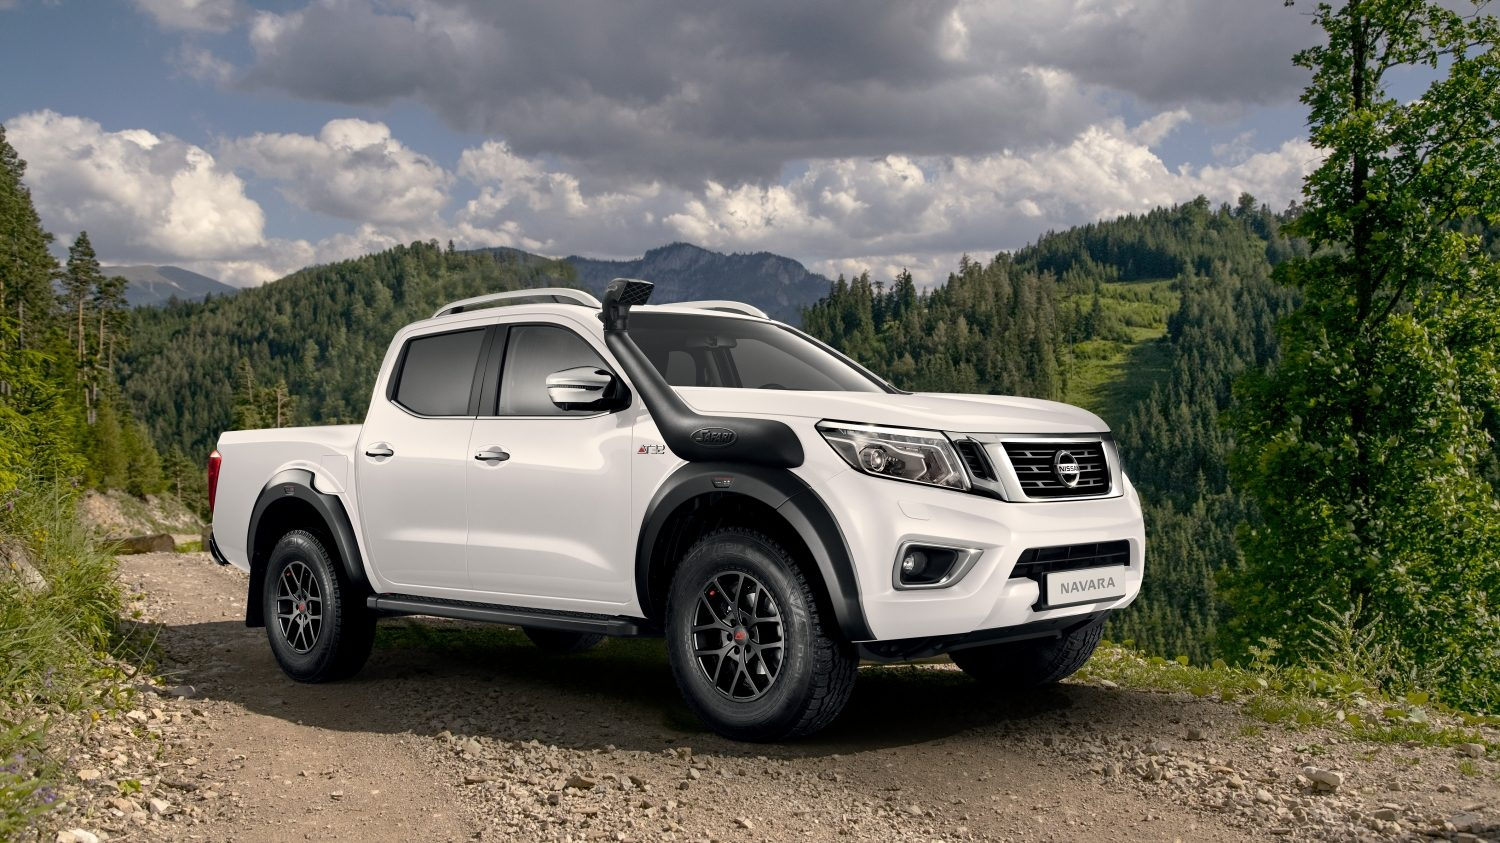 New Nissan NAVARA off-roader at32